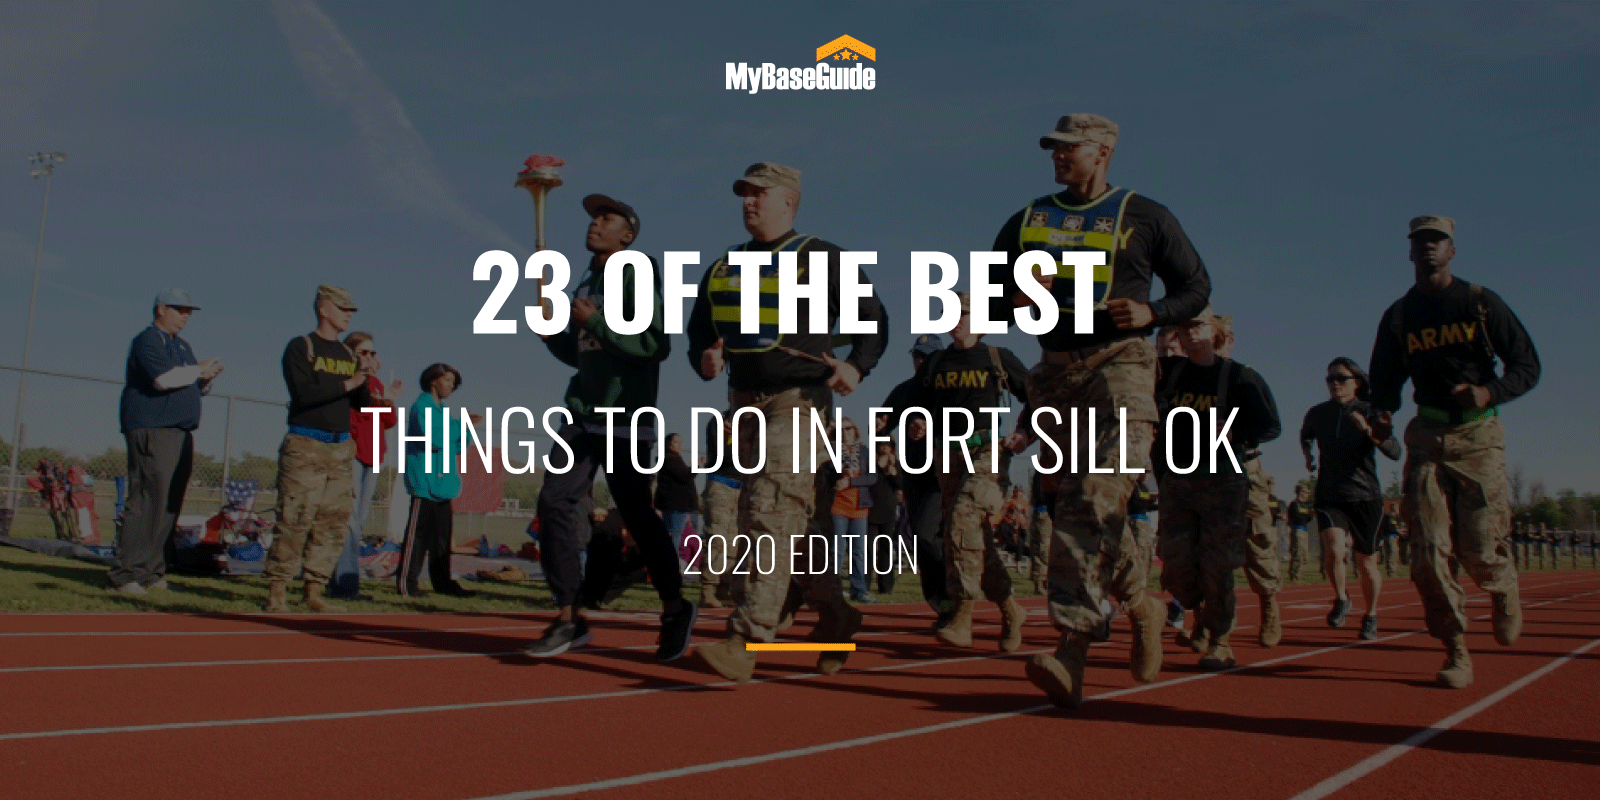 23 Of the Best Things to Do in Fort Sill OK